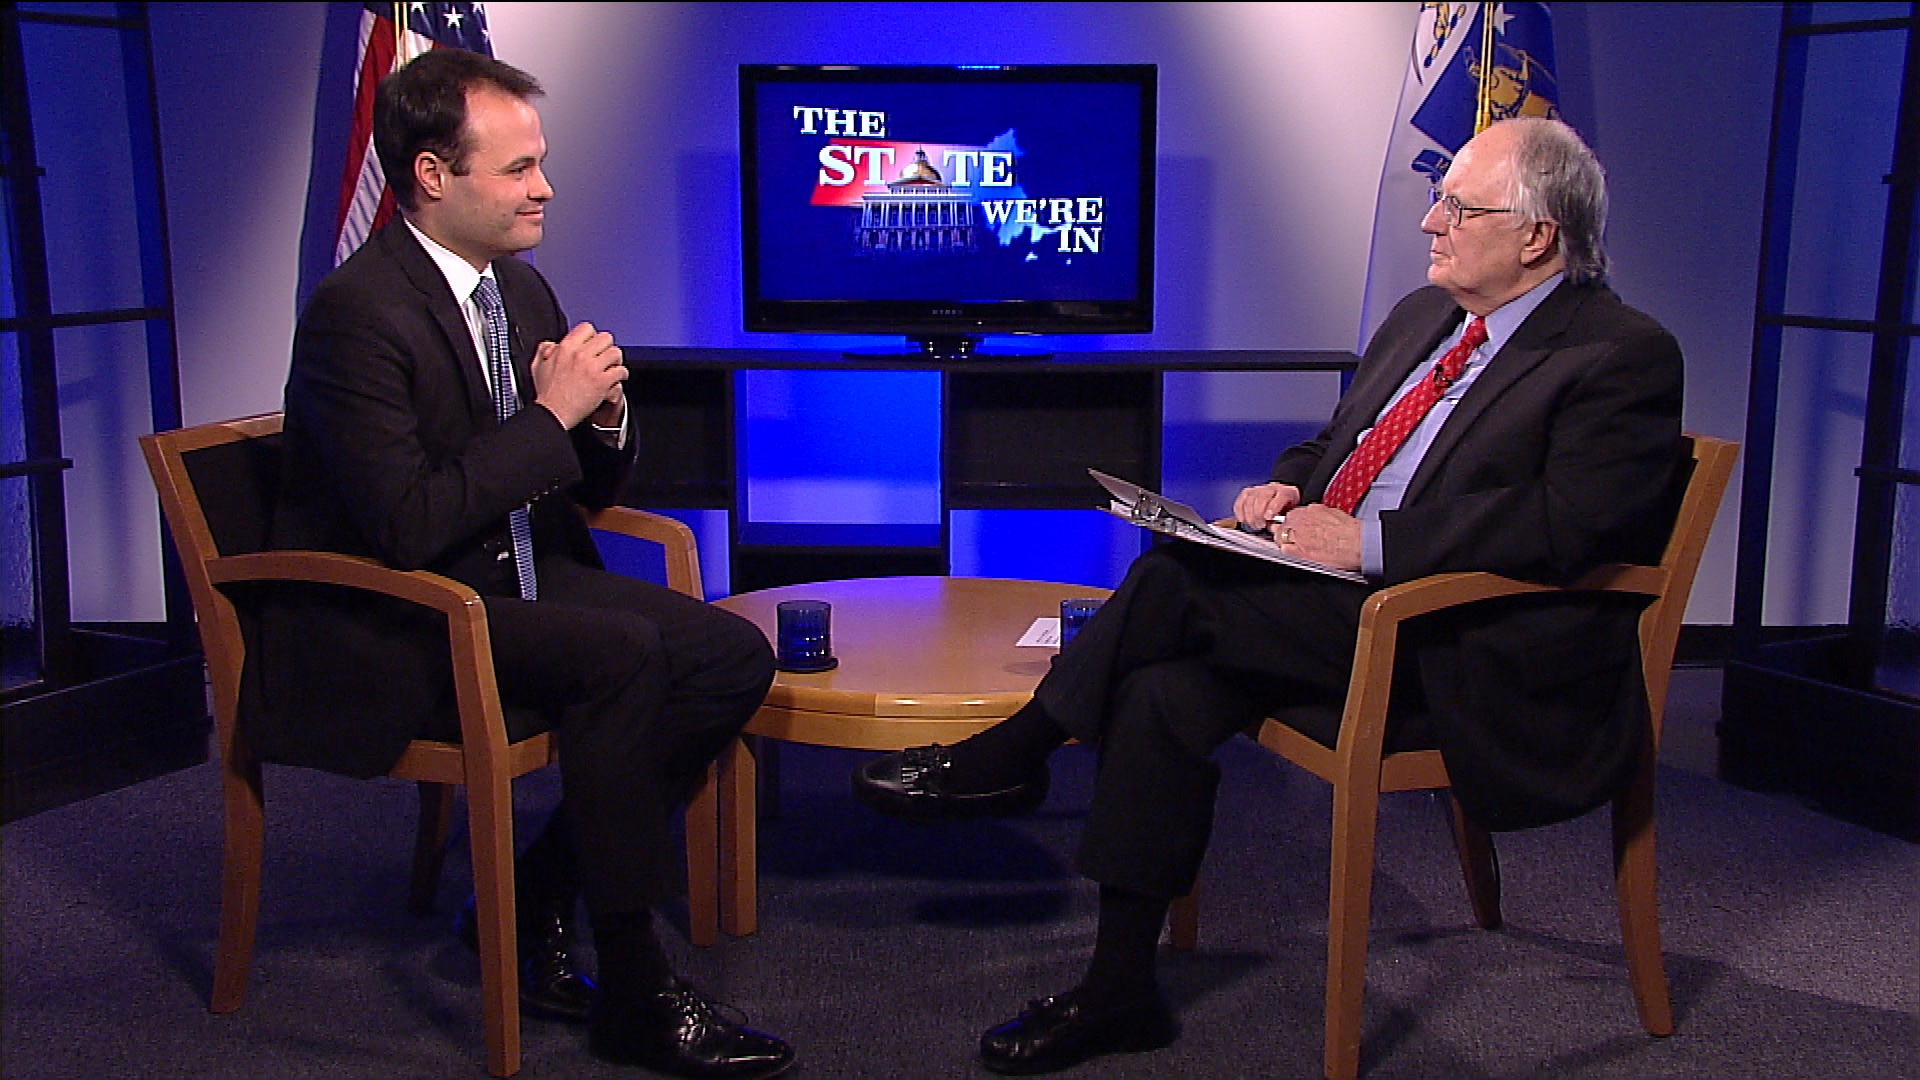 State Sen. Eric Lesser discusses his efforts to create a statewide high-speed rail link and Governor Charlie Baker's 2018 Budget proposal.